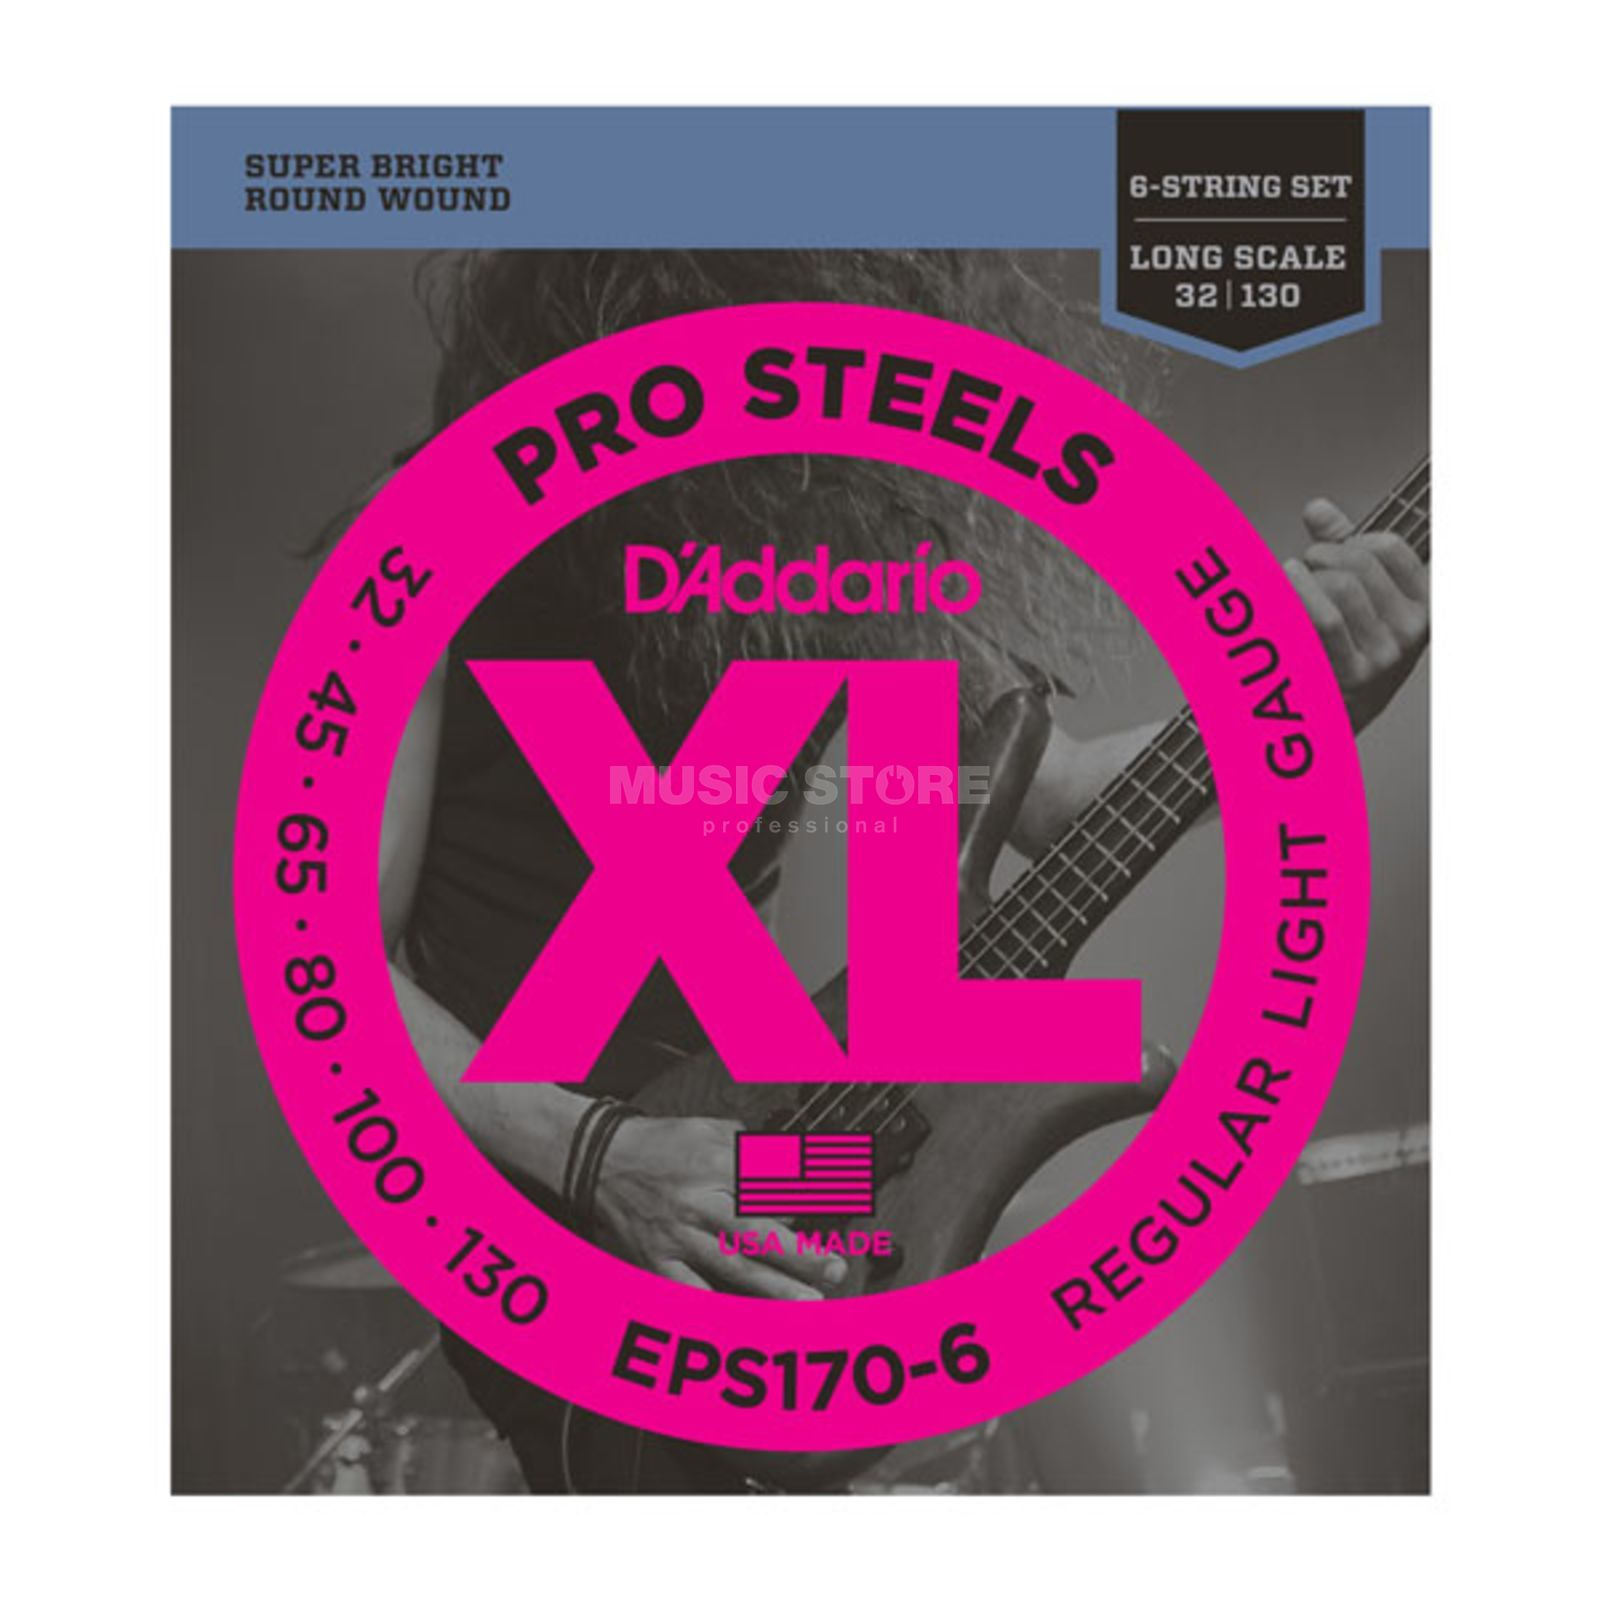 D'Addario 6er bas XL Pro Steels 30-130 30-45-65-80-100-130, EPS170-6 Productafbeelding